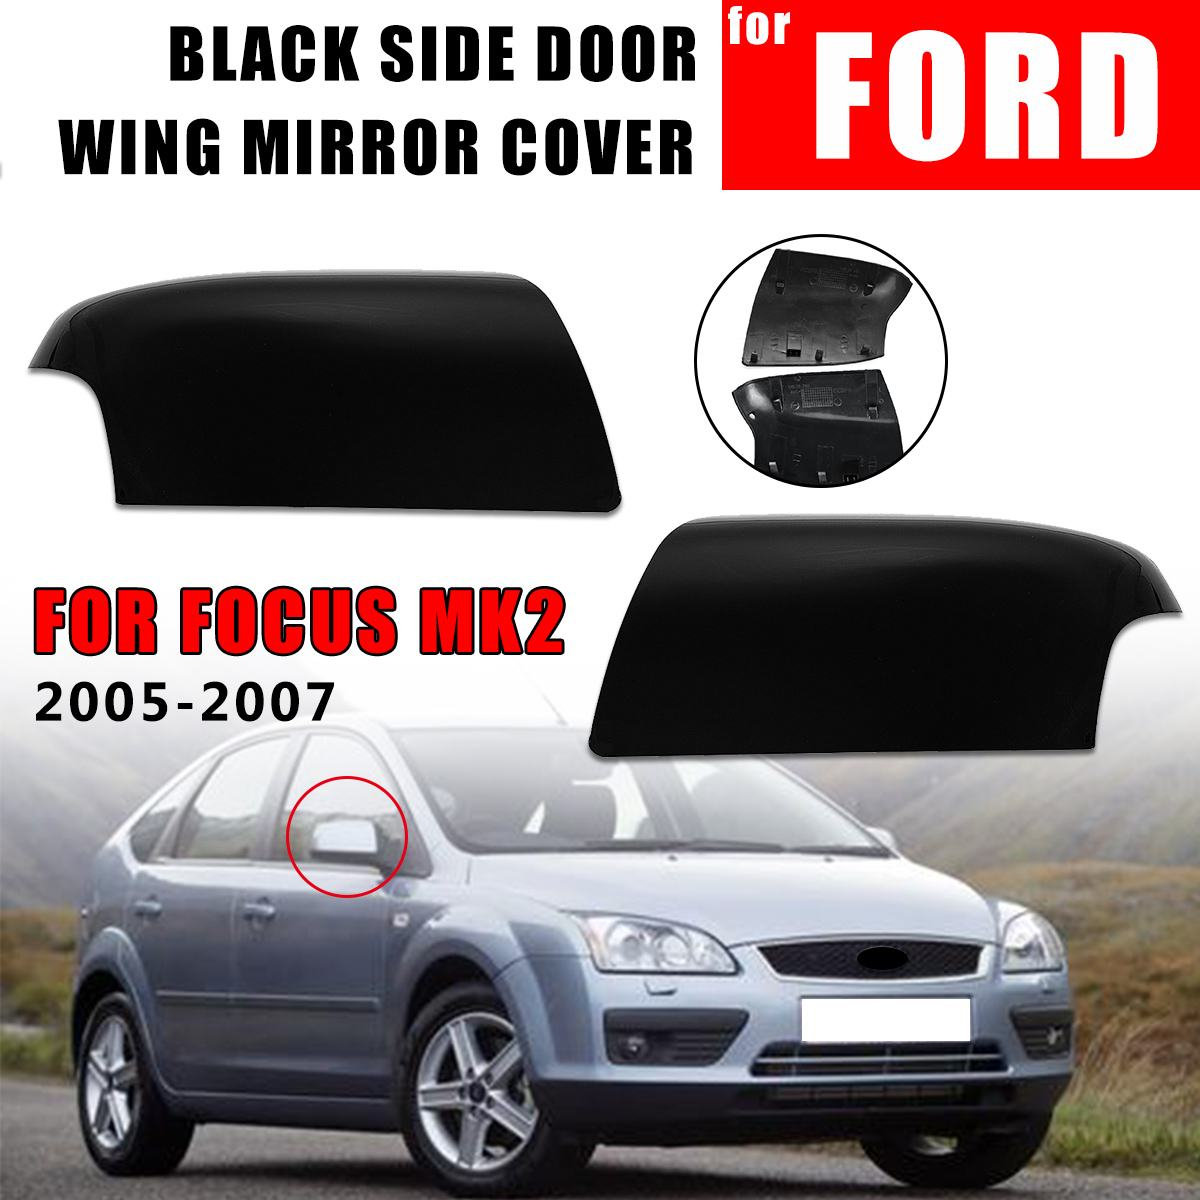 1Pair Left Right <font><b>Side</b></font> Car Rear View <font><b>Mirror</b></font> Wing Cover Case Trim Glossy Black For <font><b>FORD</b></font> For <font><b>FOCUS</b></font> MK2 2005 2006 2007 Styling image